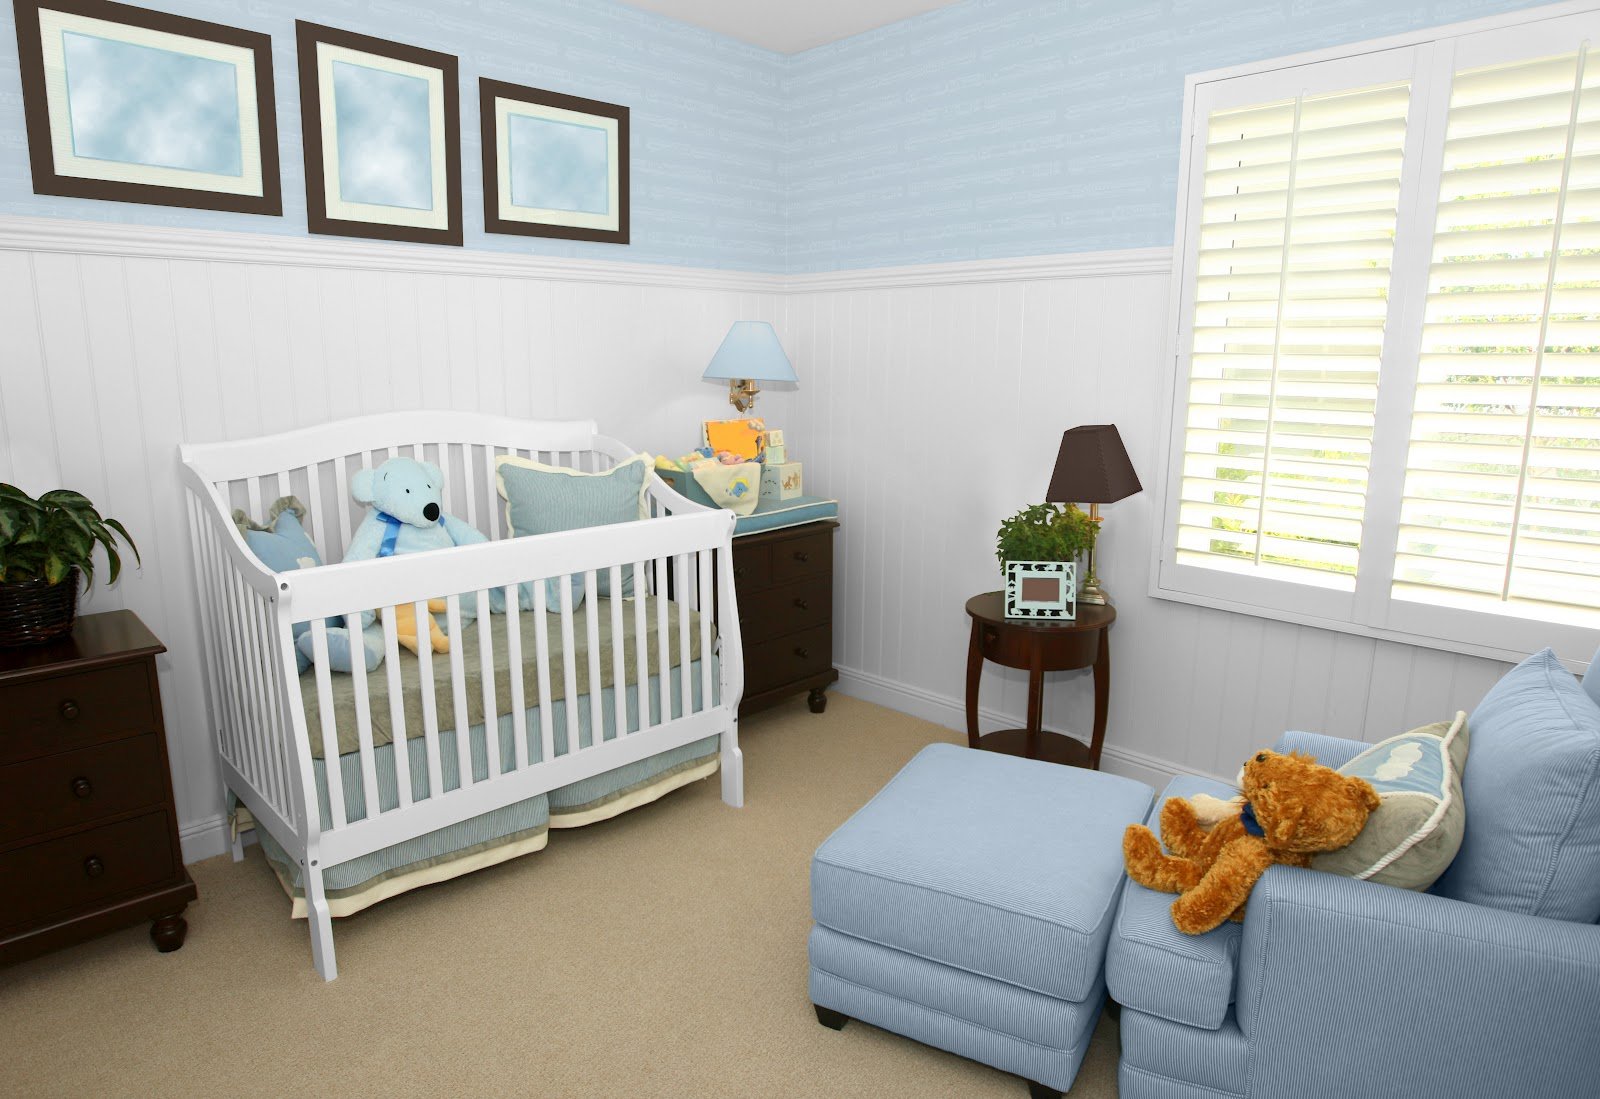 Top 10 baby nursery room colors and decorating ideas - Room decoration for baby boy ...